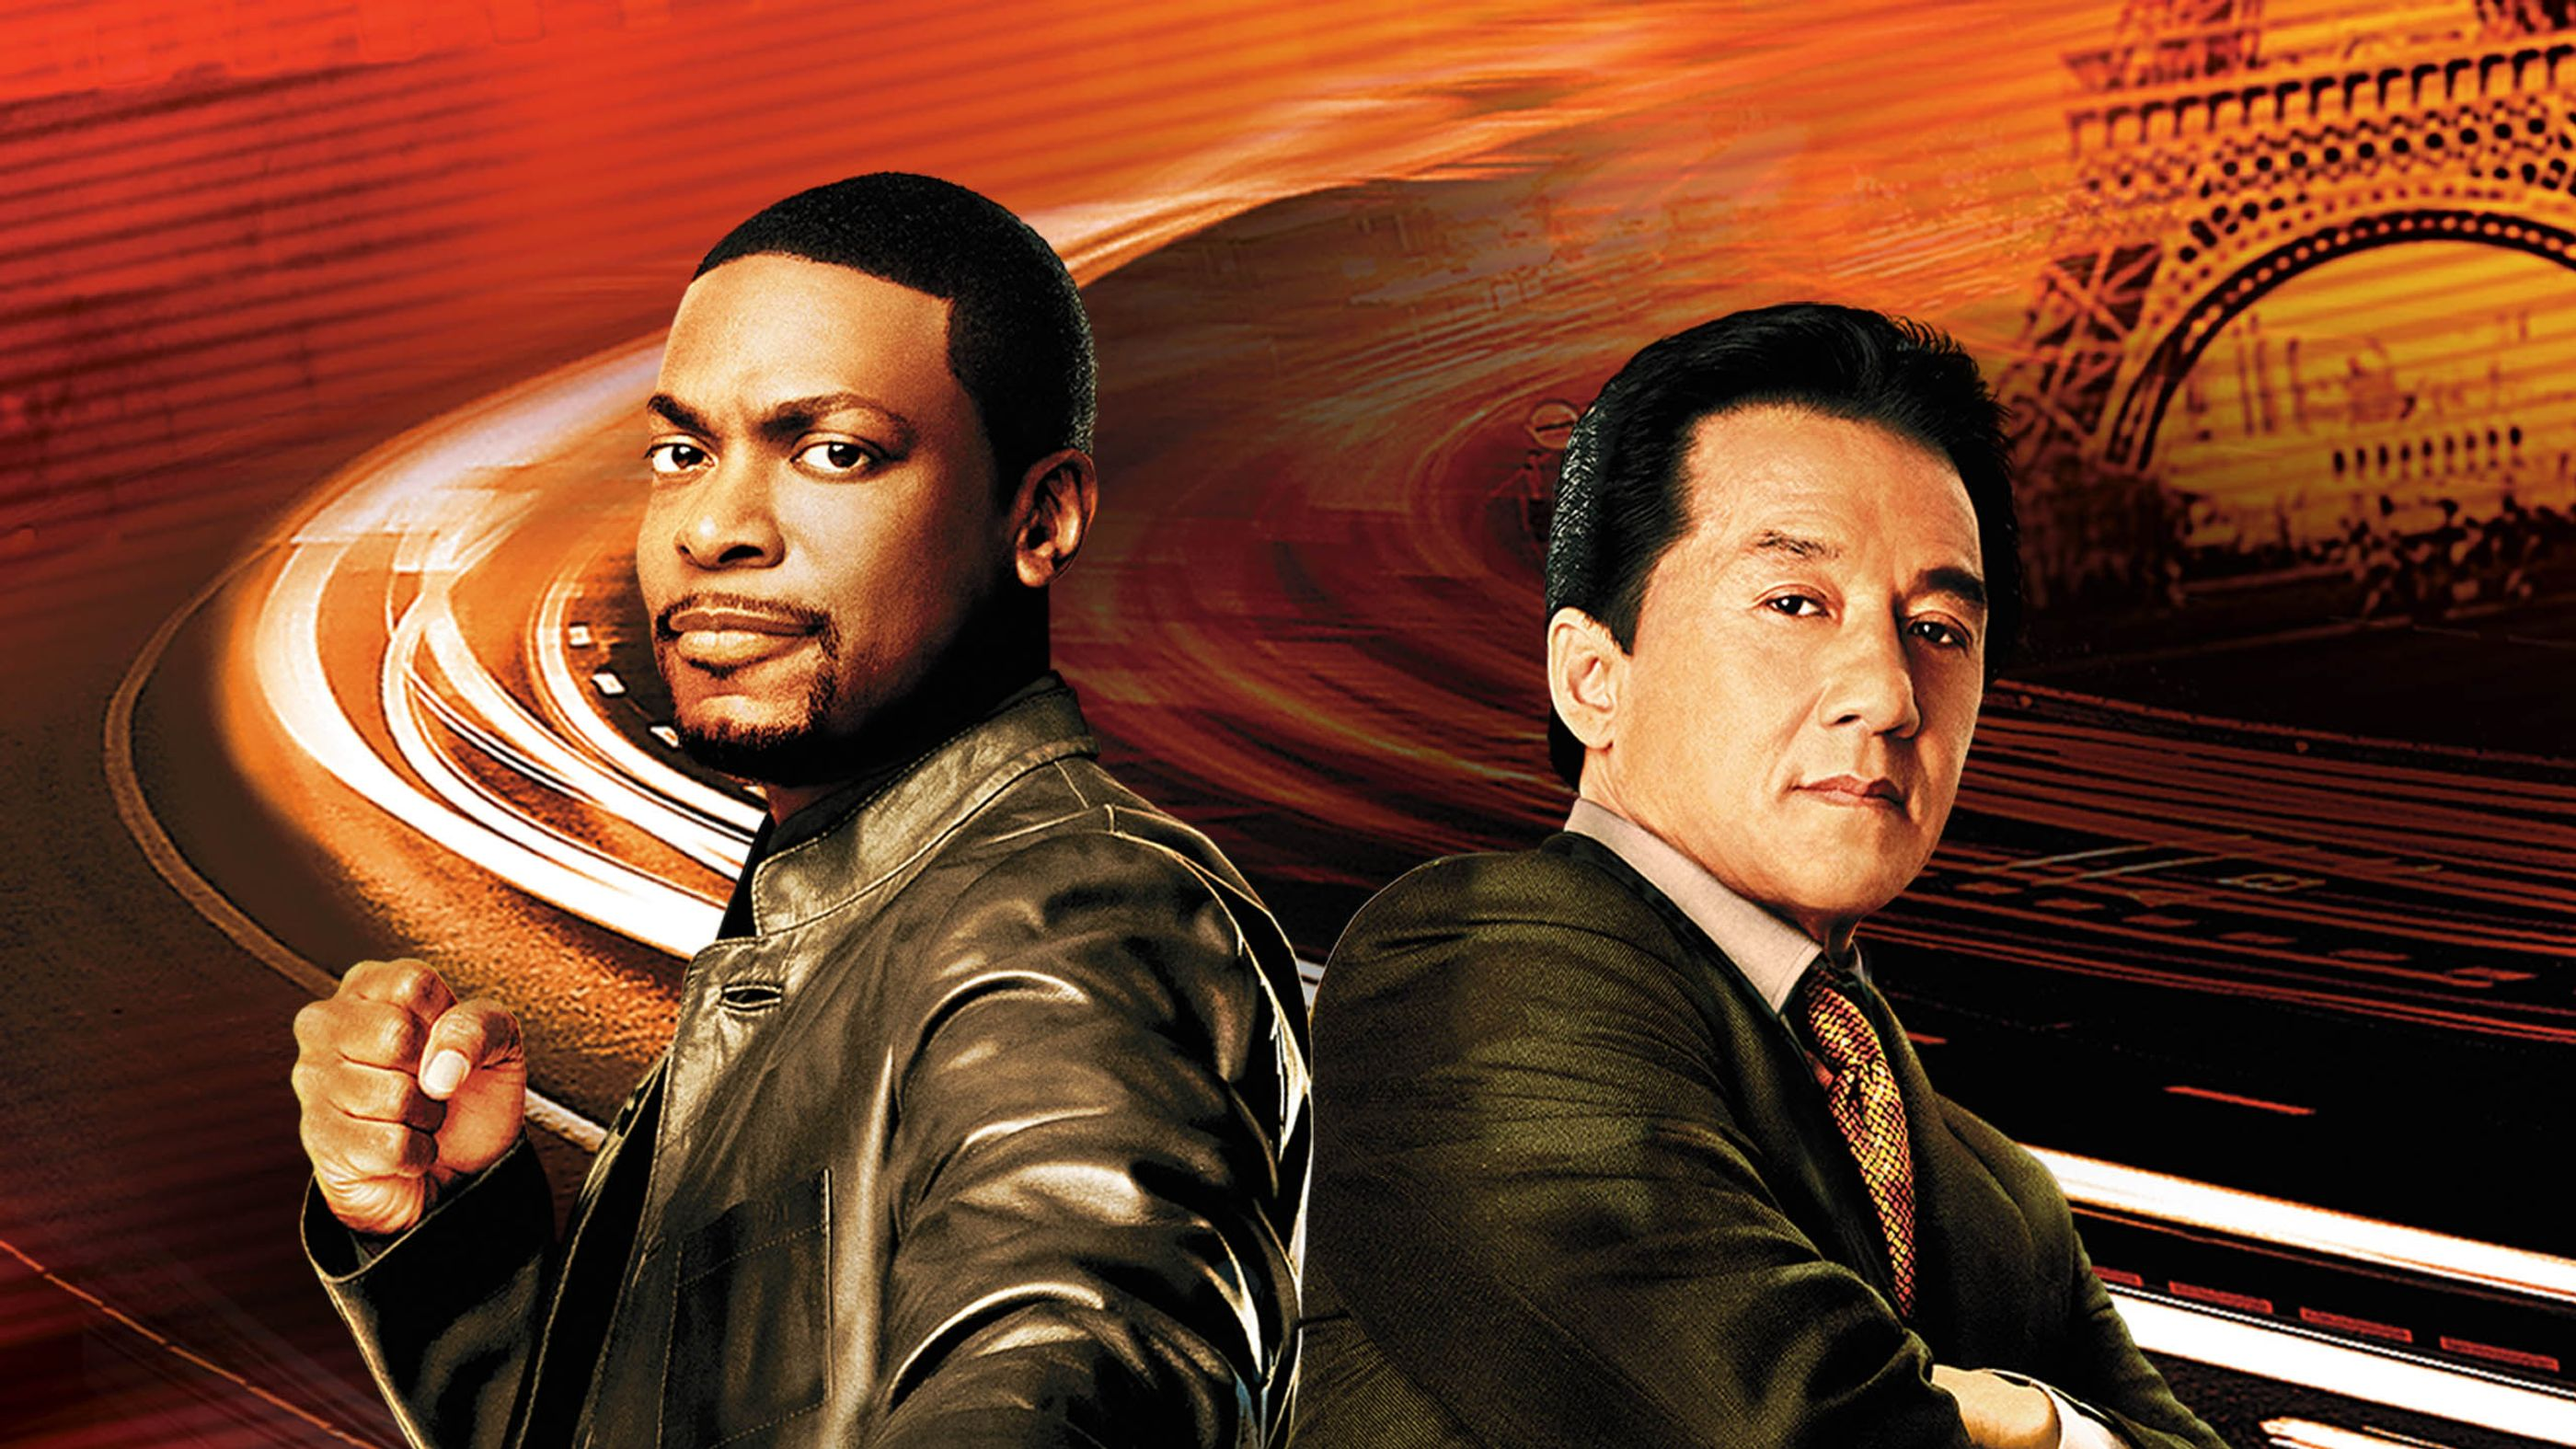 Rush Hour 3 Trailer